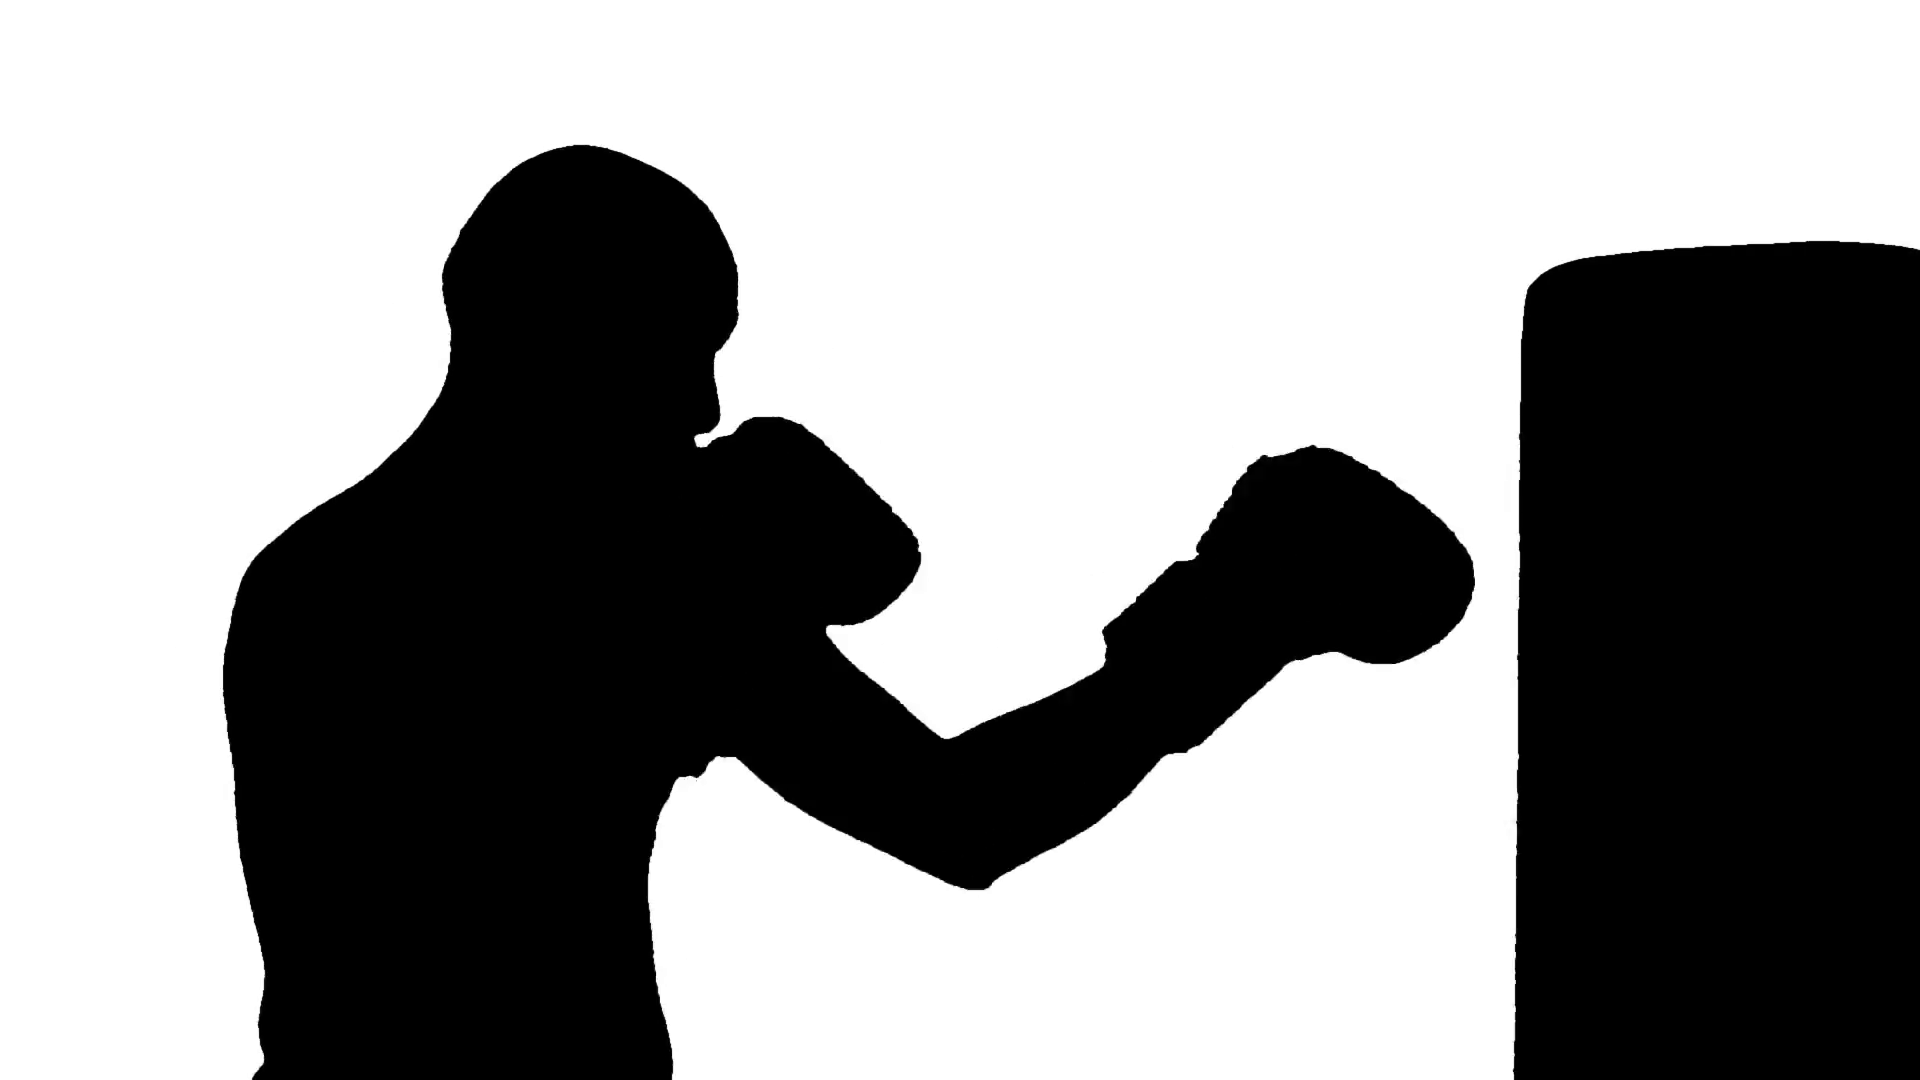 Boxer clipart boxing bag. Punch silhouette at getdrawings